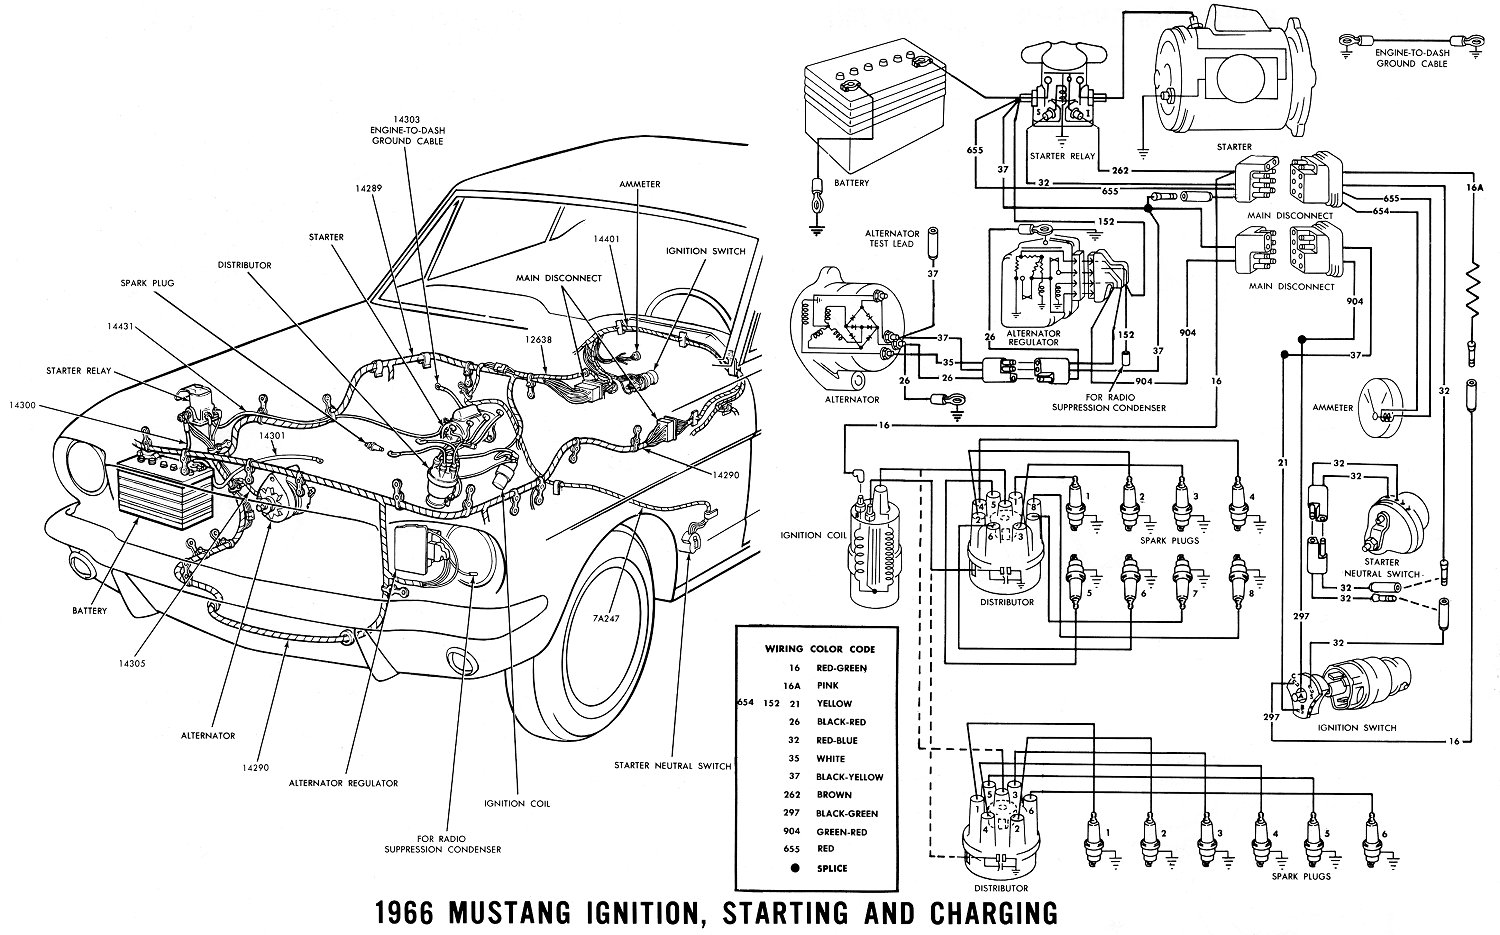 1996 ford 3g alternator wiring diagram Images Gallery. lelu s 66 mustang  1966 mustang wiring diagrams